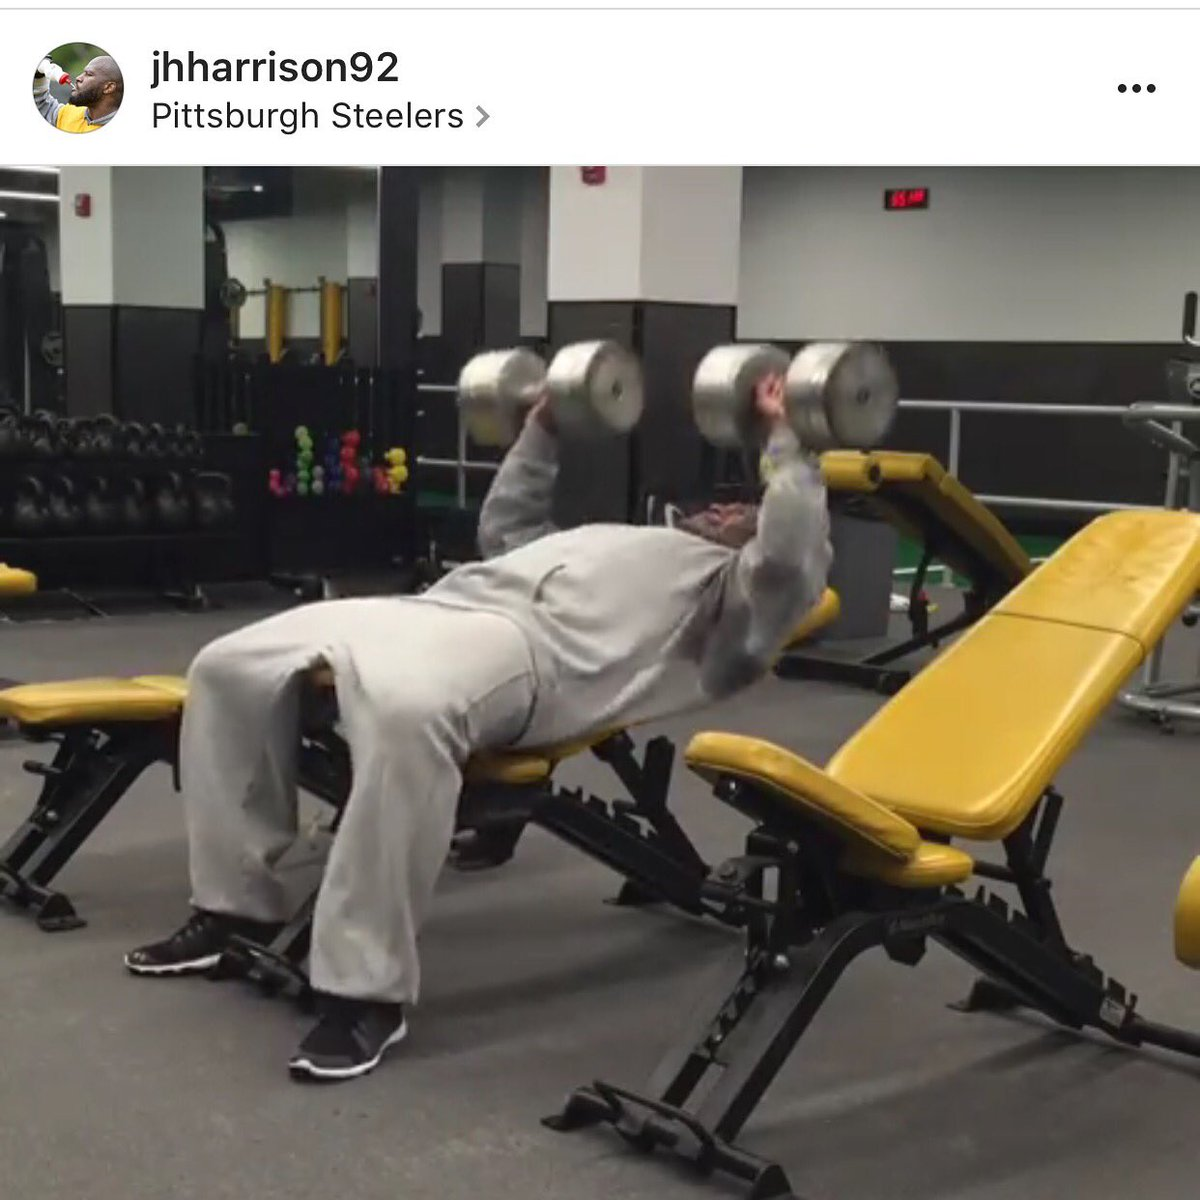 Plays on Monday night football and is in the gym training at 530am the next day! #warriormindset https://t.co/y5aEhobc3f